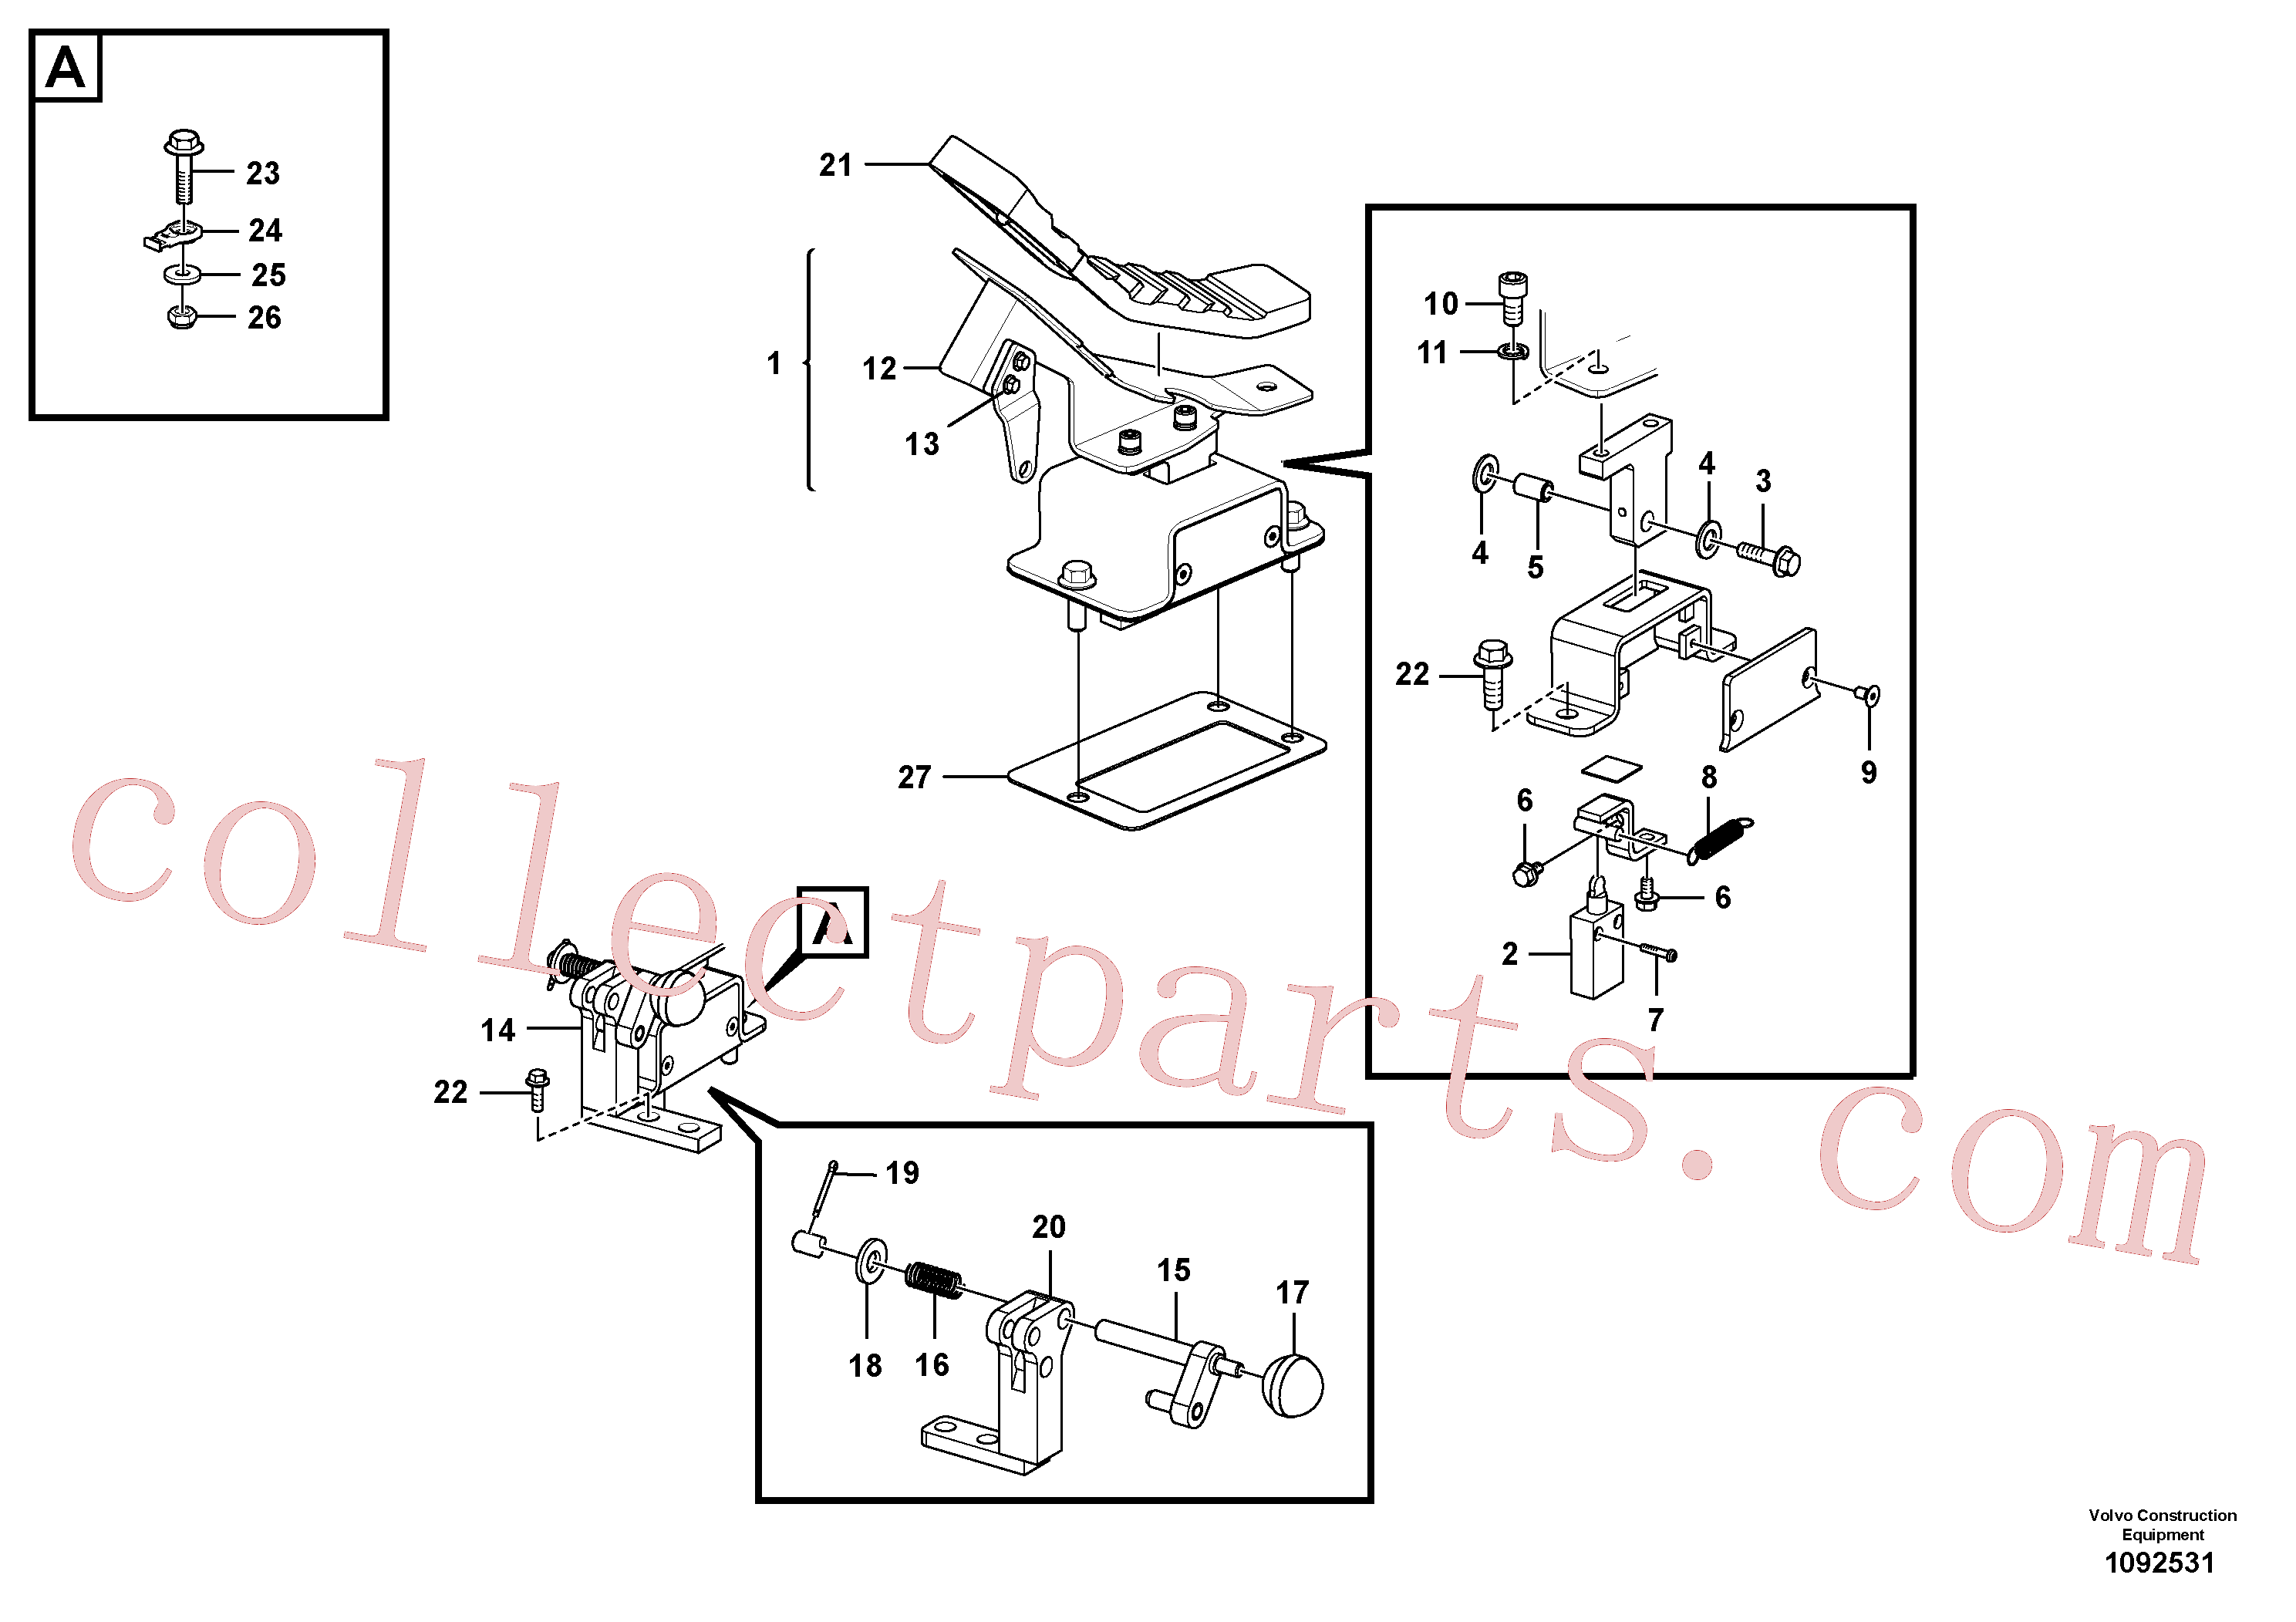 VOE14708679 for Volvo Working hydraulic, remote control valve pedal for hammer and shear(1092531 assembly)